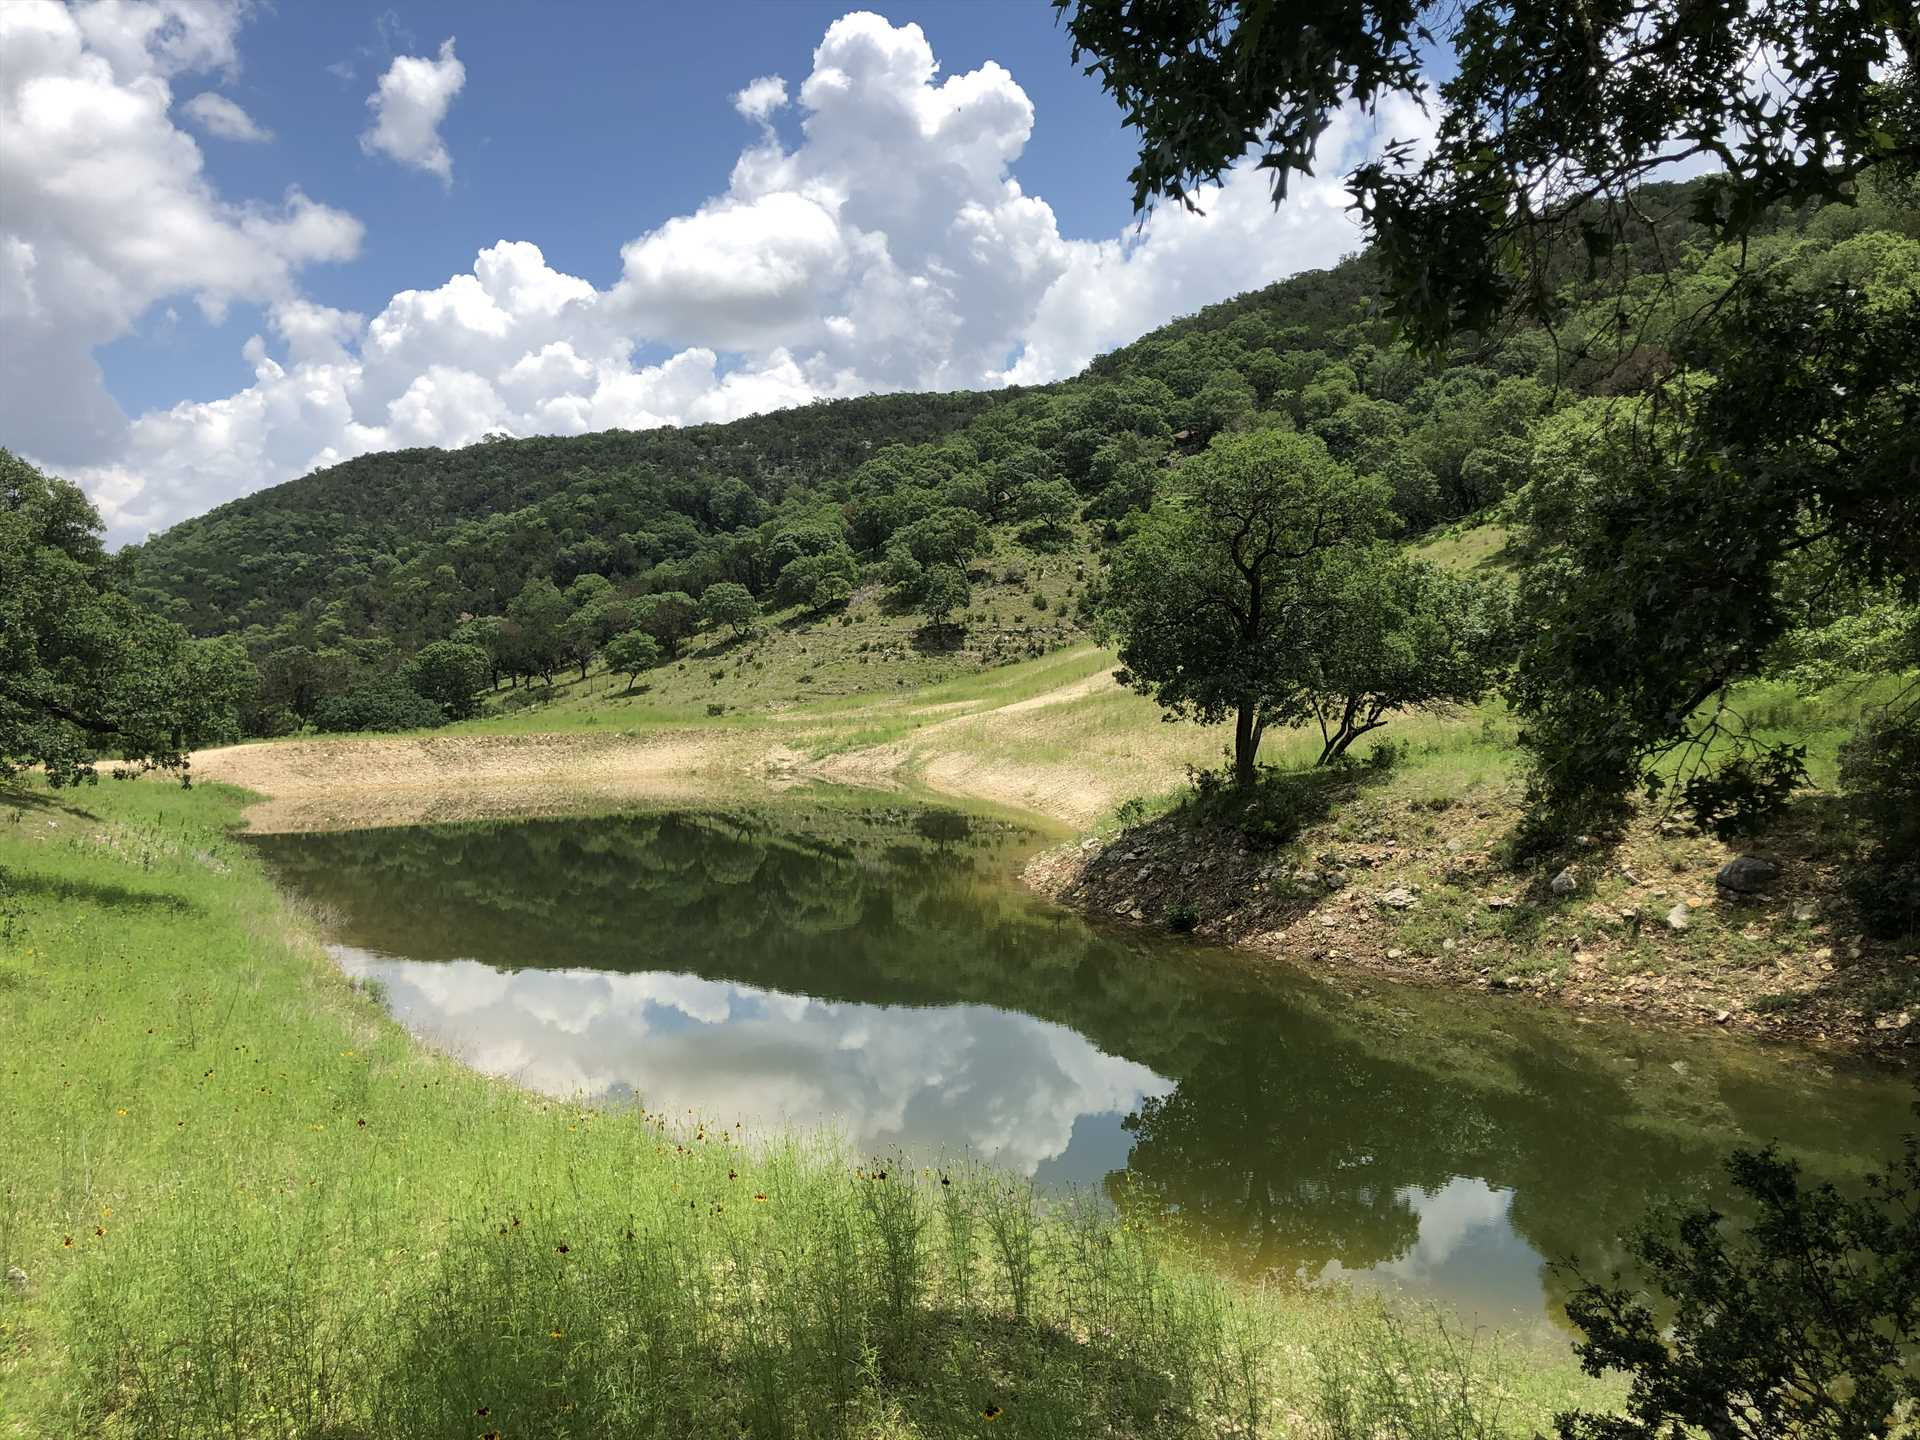 You're free to fish the seasonal creek when the water level's up, but just kicking back and enjoying the view's cool, too!